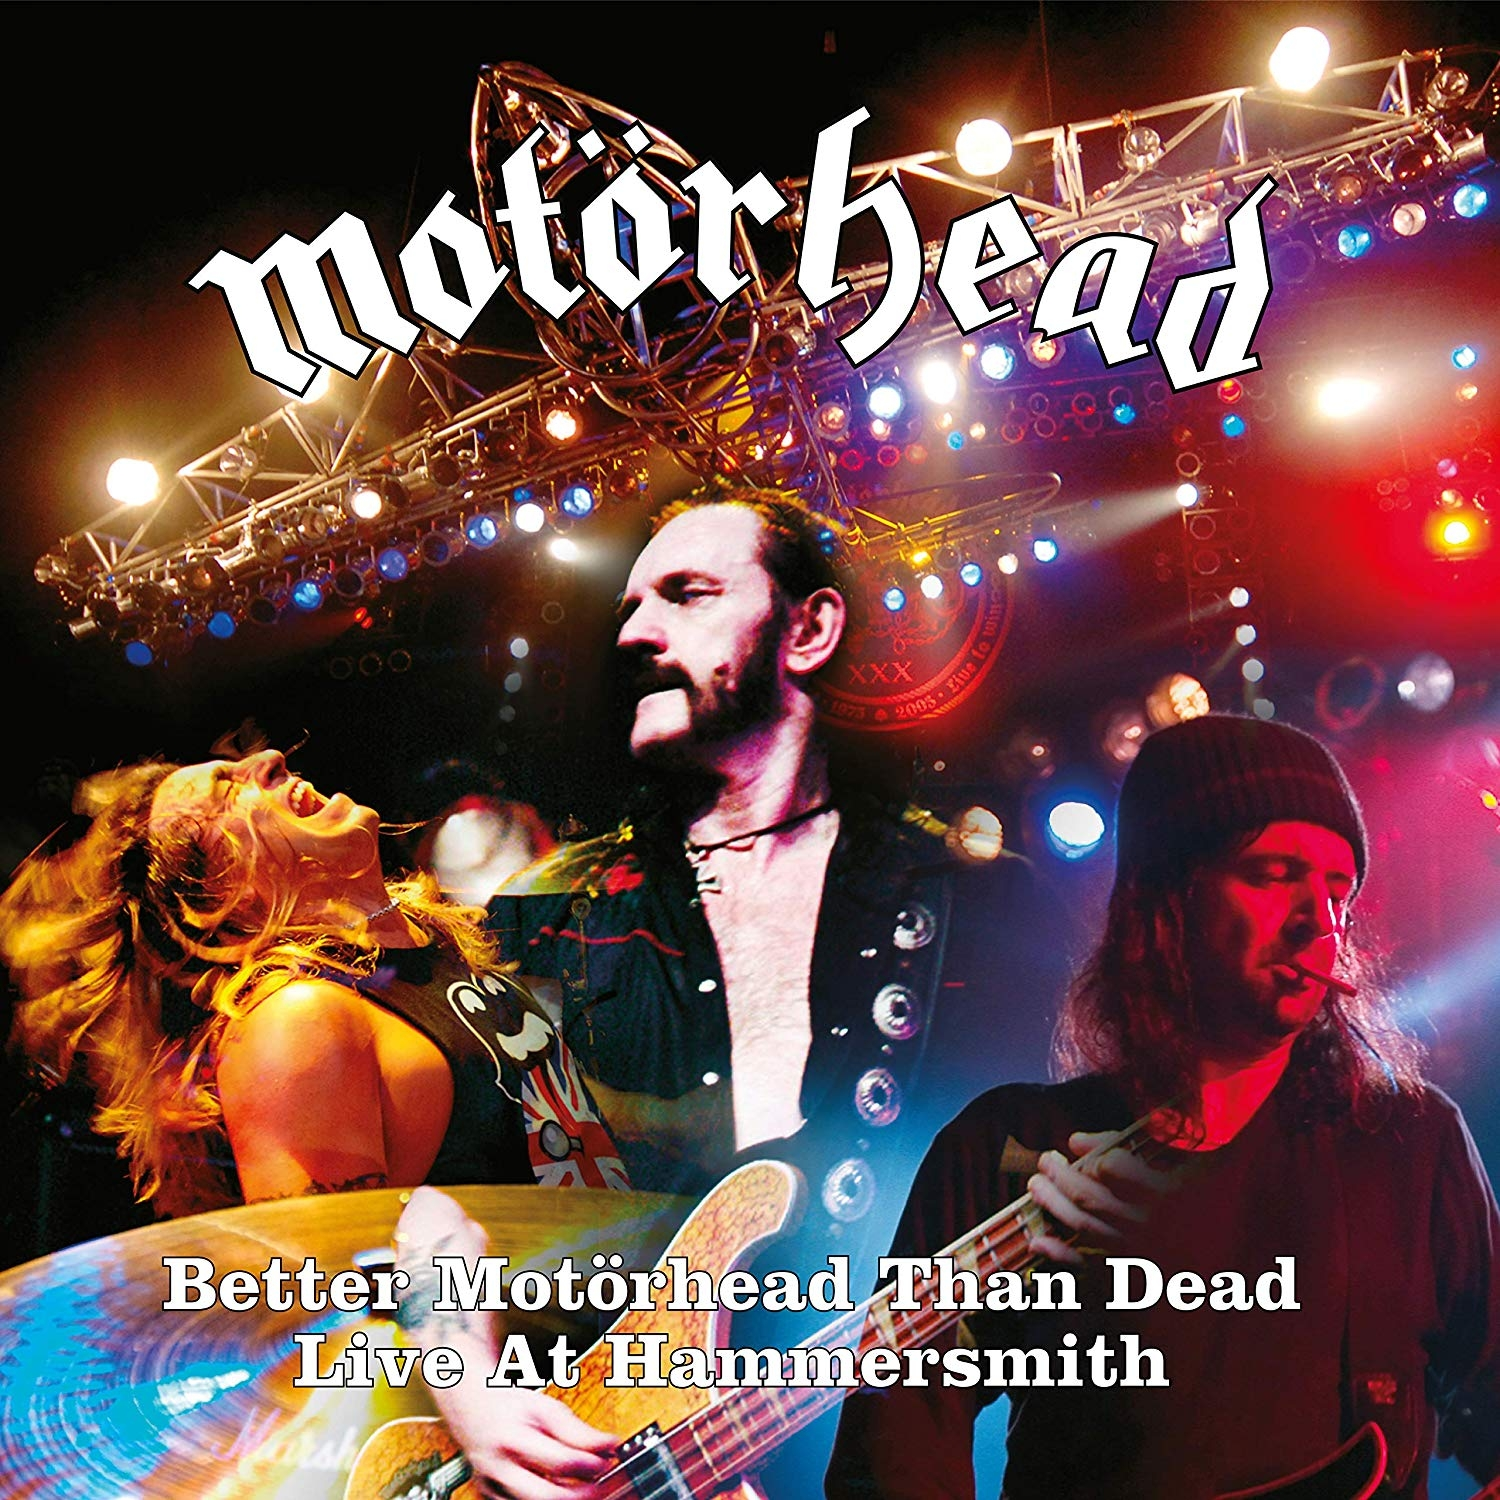 Better Motorhead Than Dead at Hammersmith (2CD)